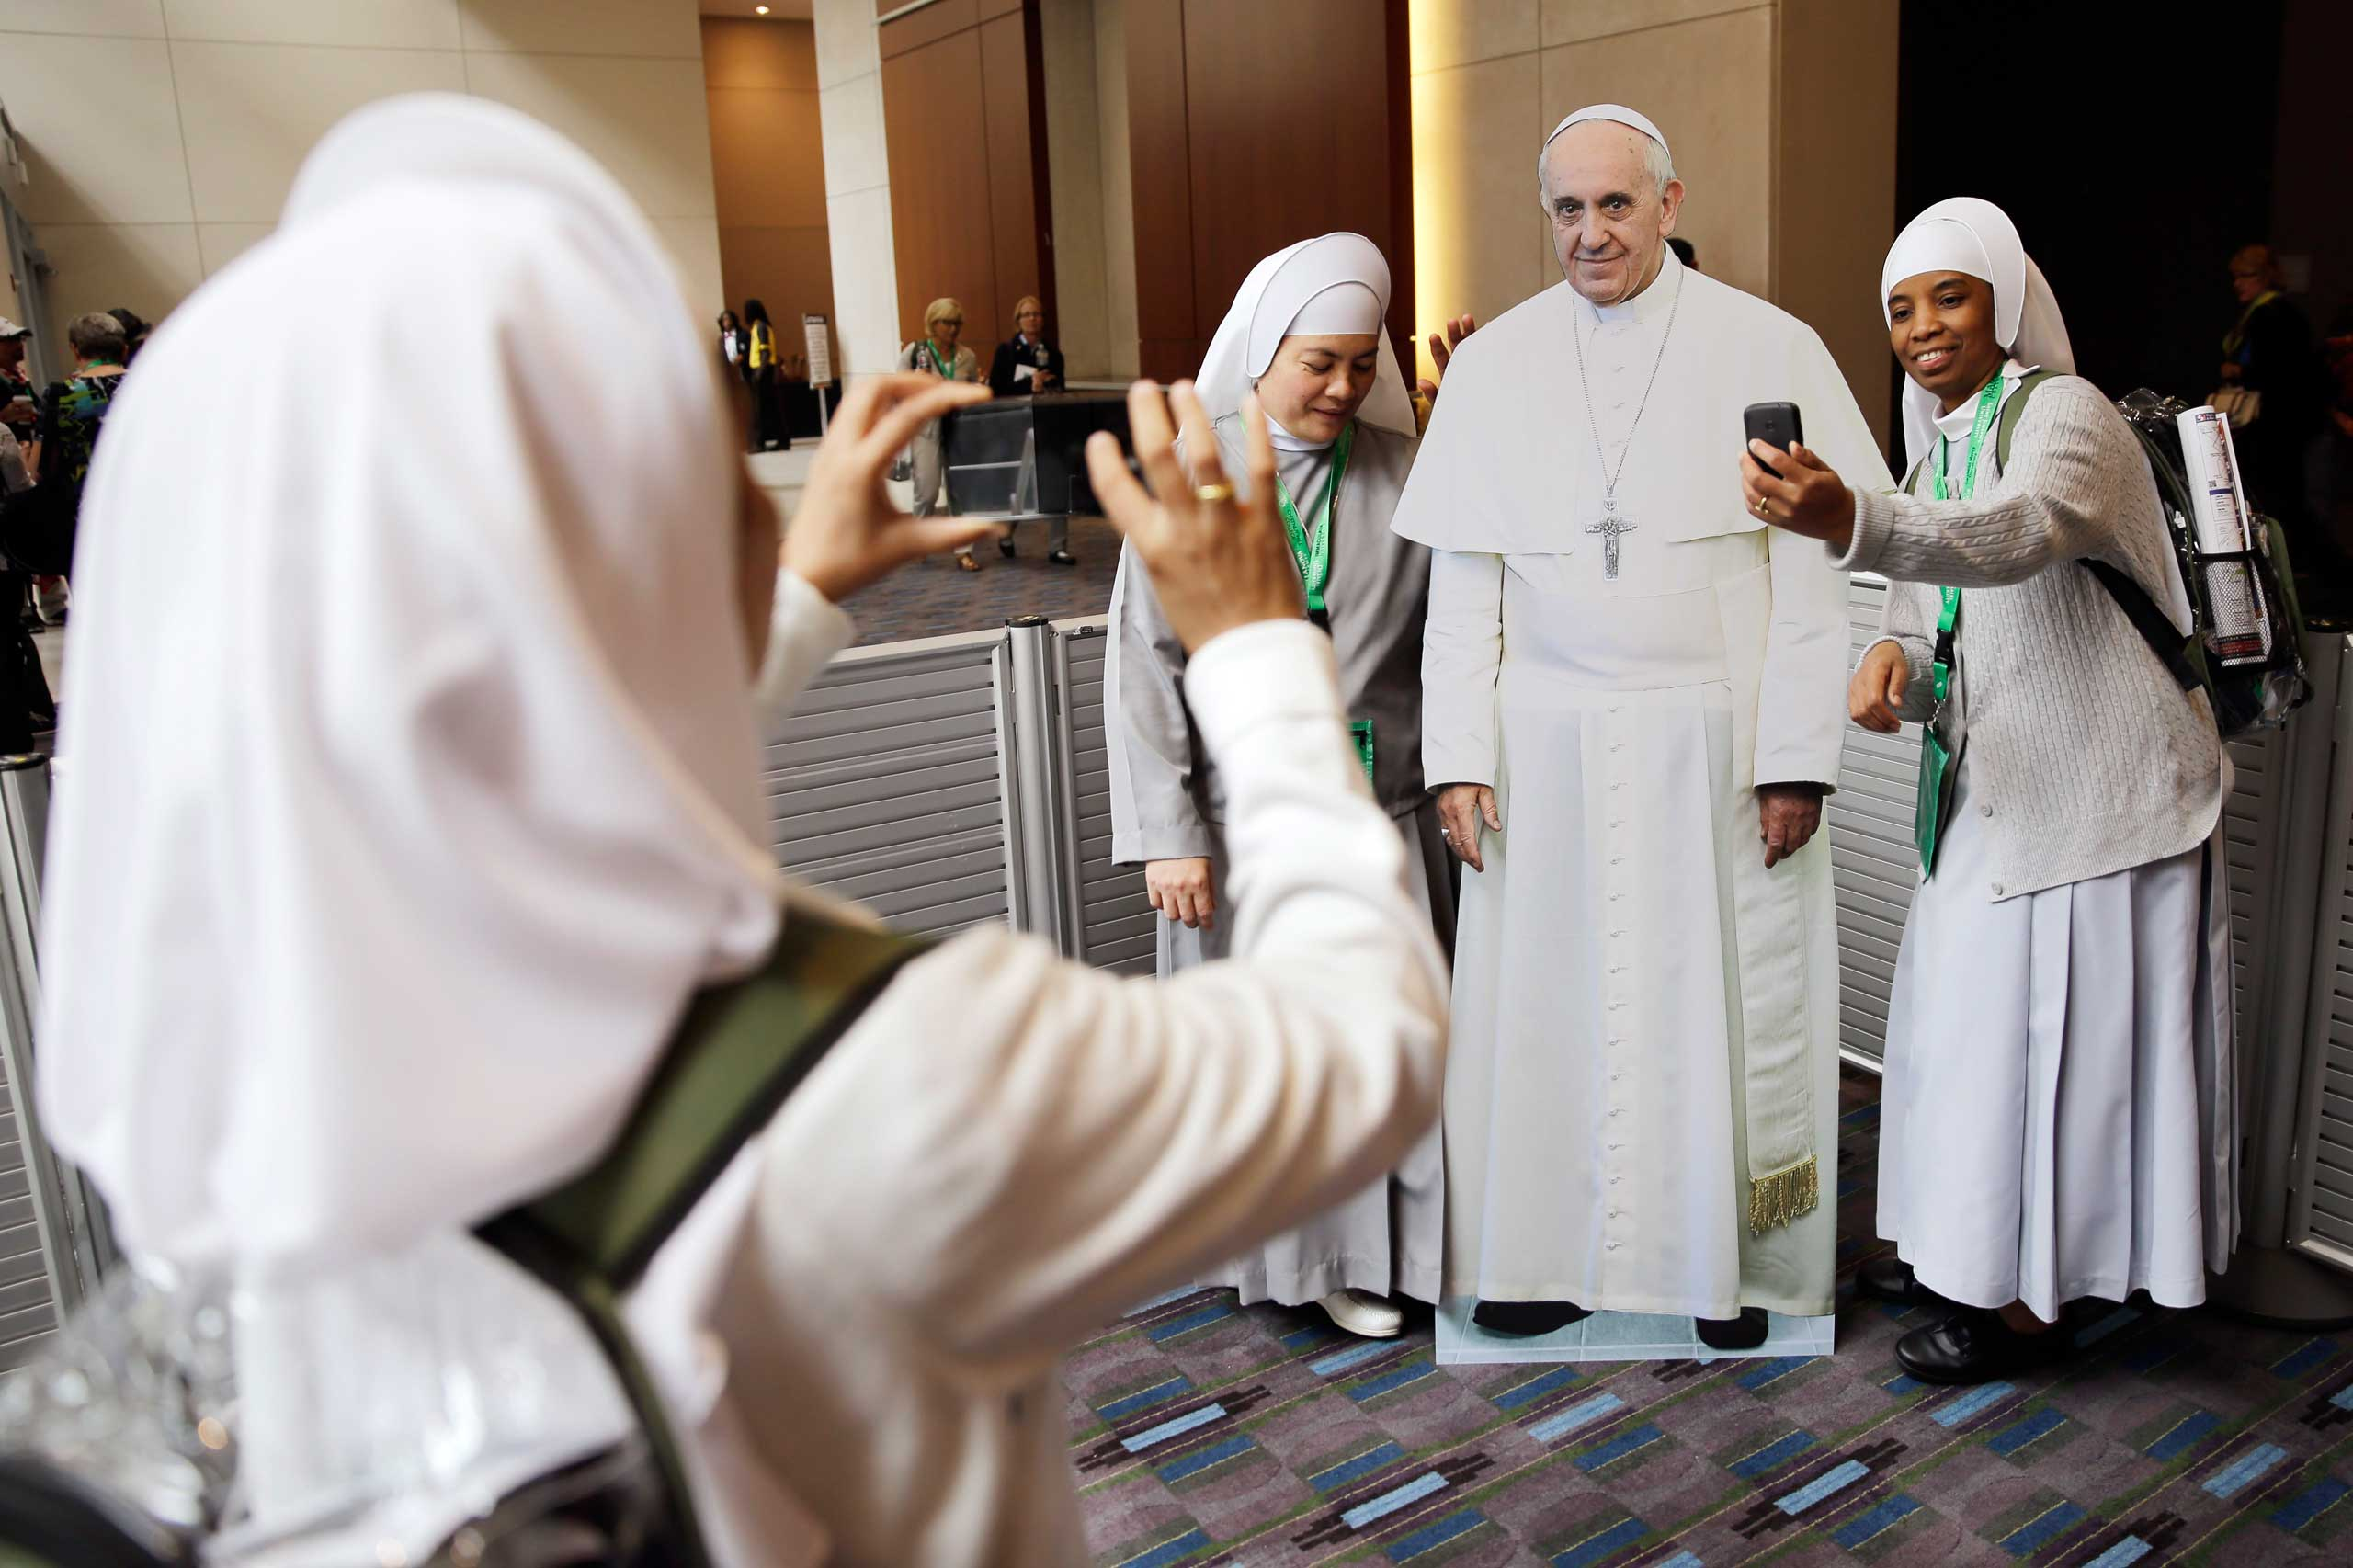 Nuns with the Hospitaler Sisters of Mercy in Pleasantville, N.J., pose for a selfie with a cutout of Pope Francis, at the World Meeting of Families conference, in Philadelphia, on Sept. 22, 2015.